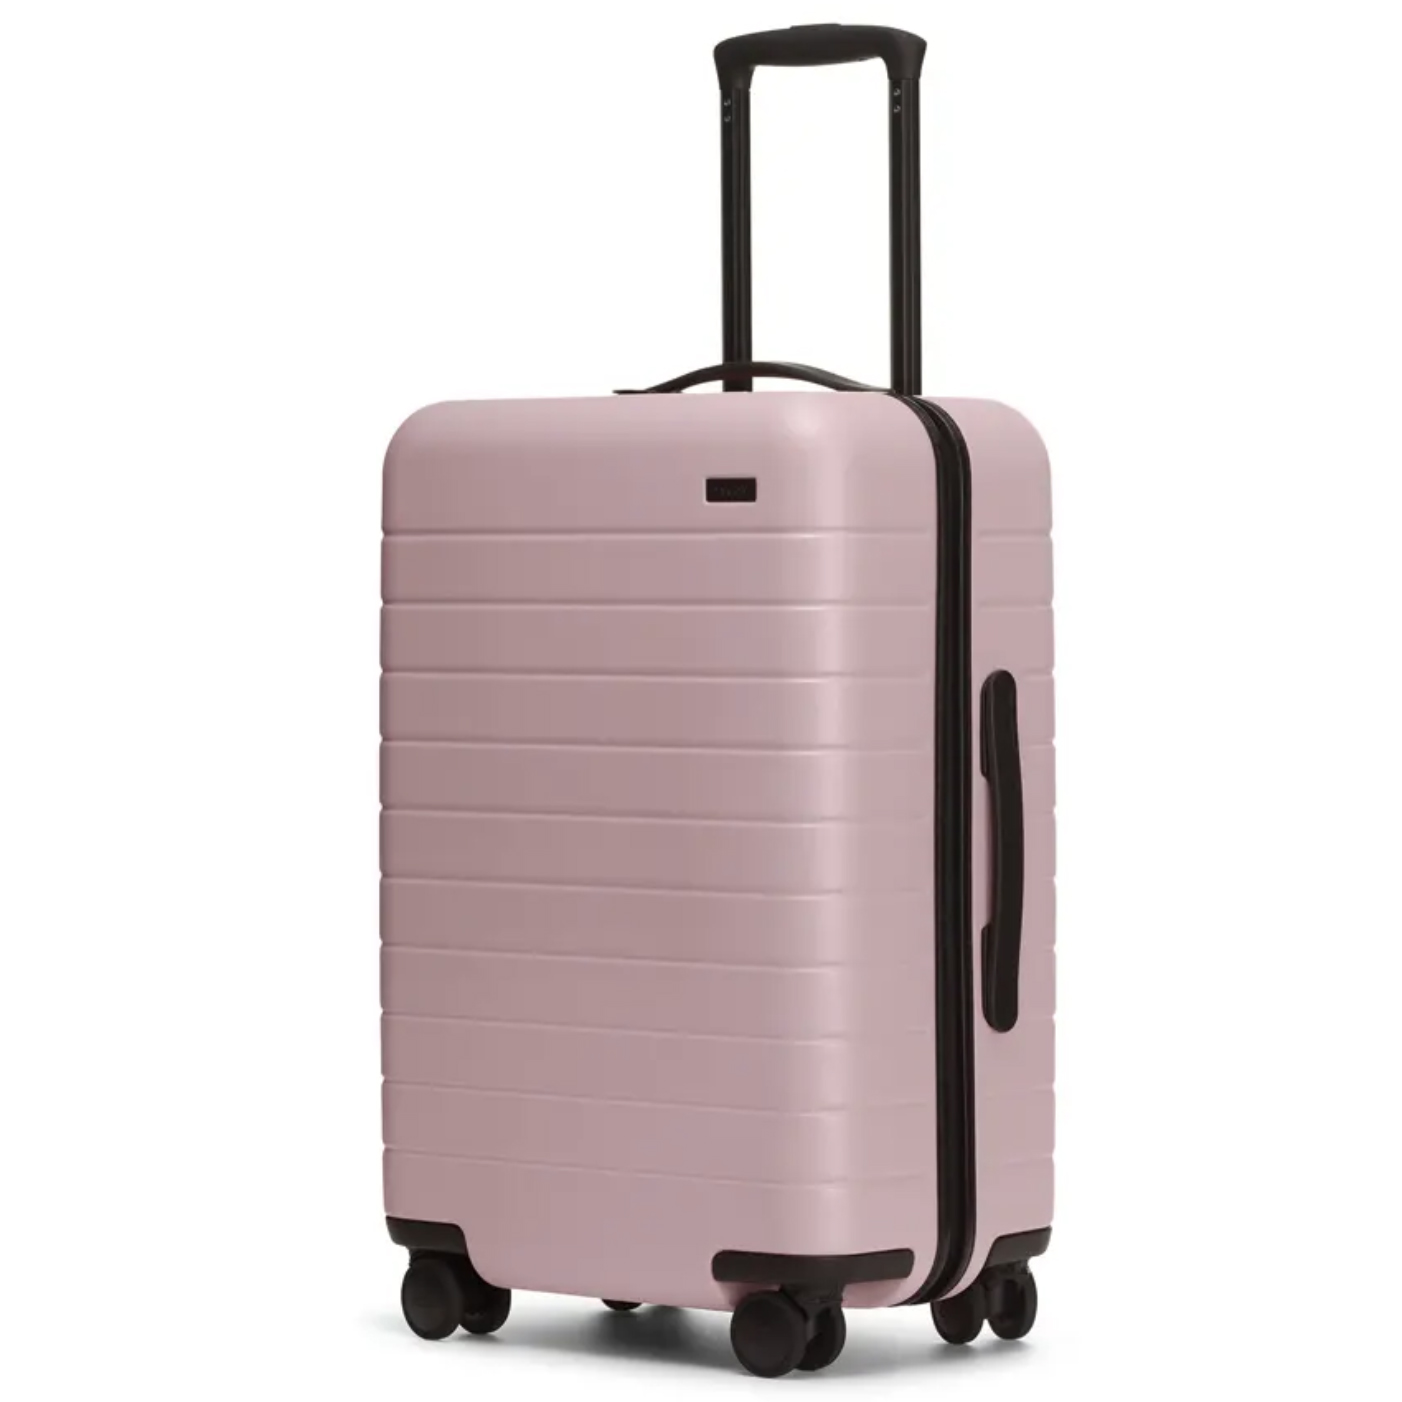 Best Christmas gifts 2019 - Away The Carry-On